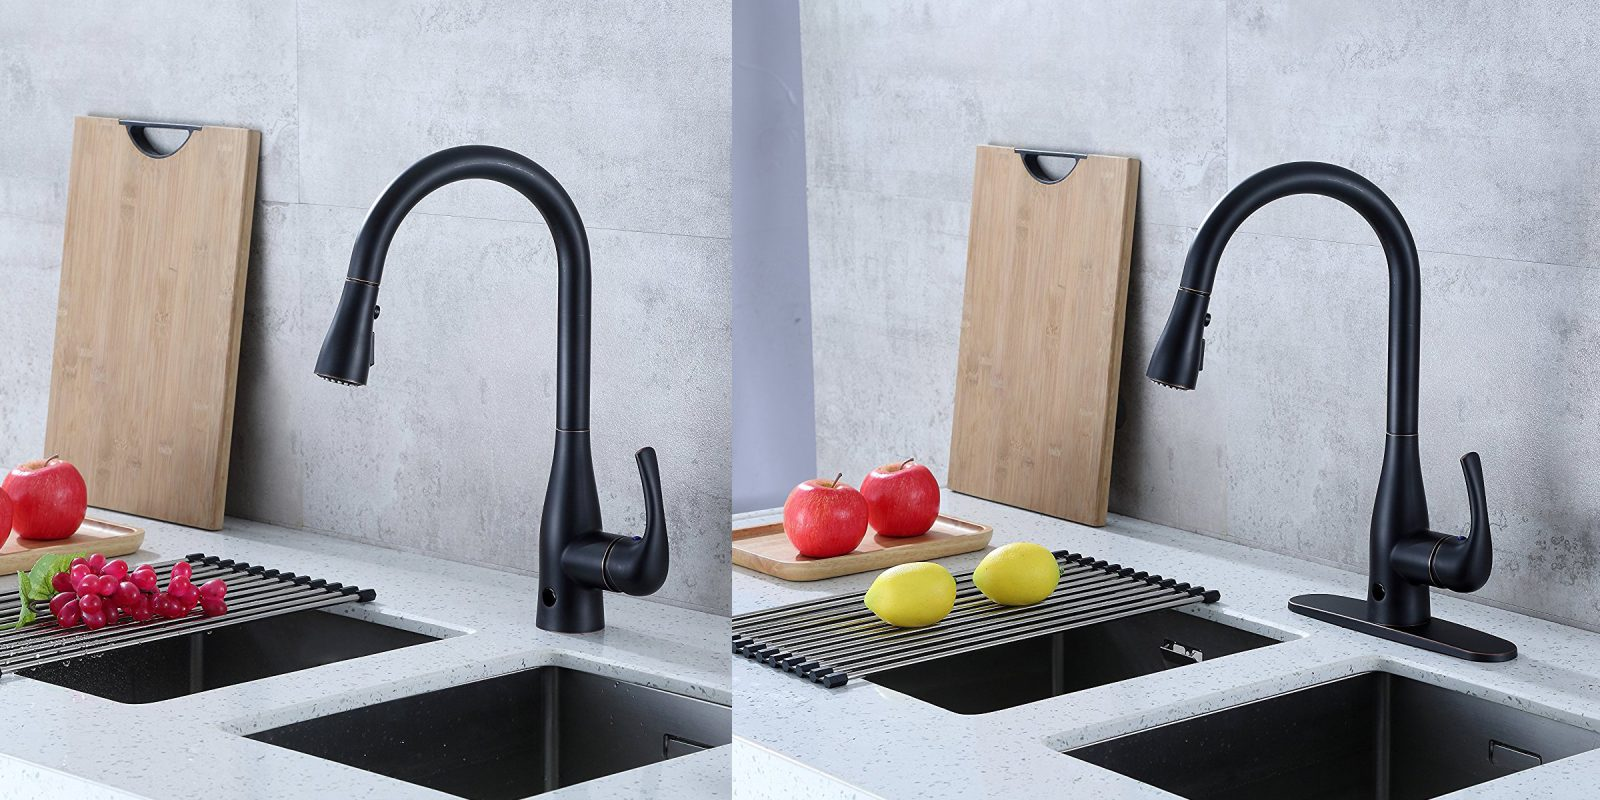 FLOW Faucet with motion sensing tech drops to $130 for today only ...